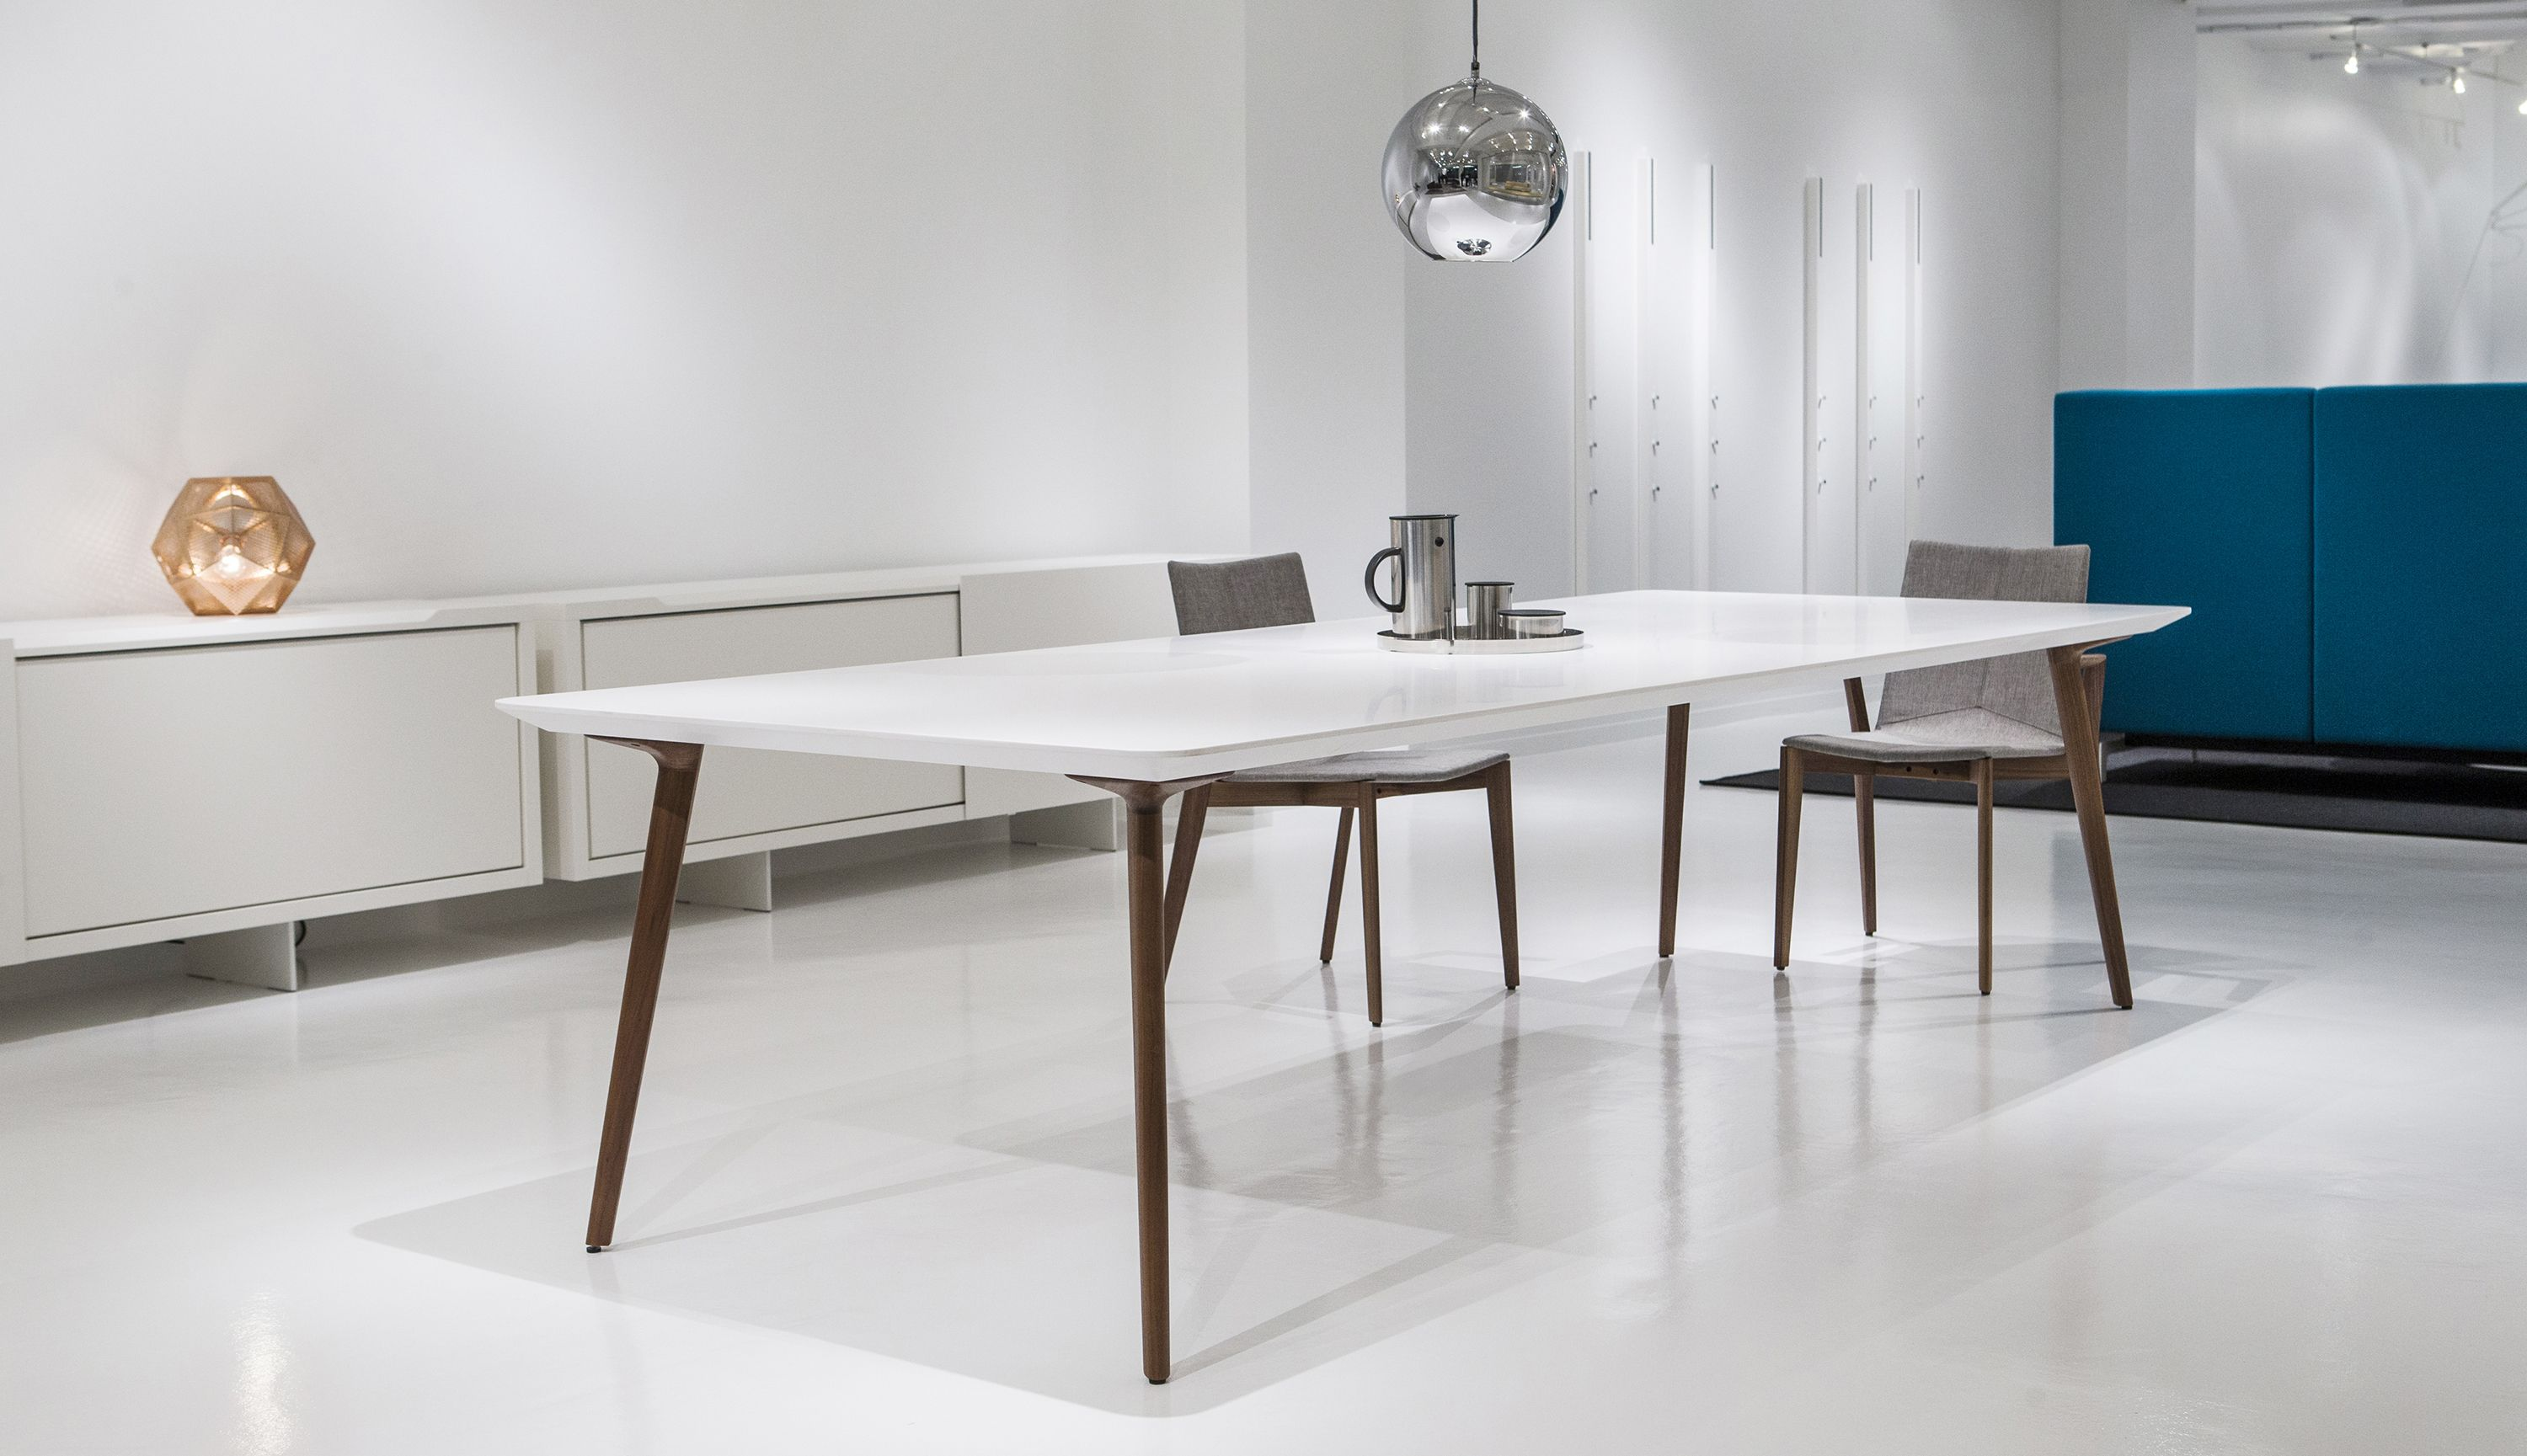 Apex Table from Davis Furniture | Office Furniture | Pinterest ...